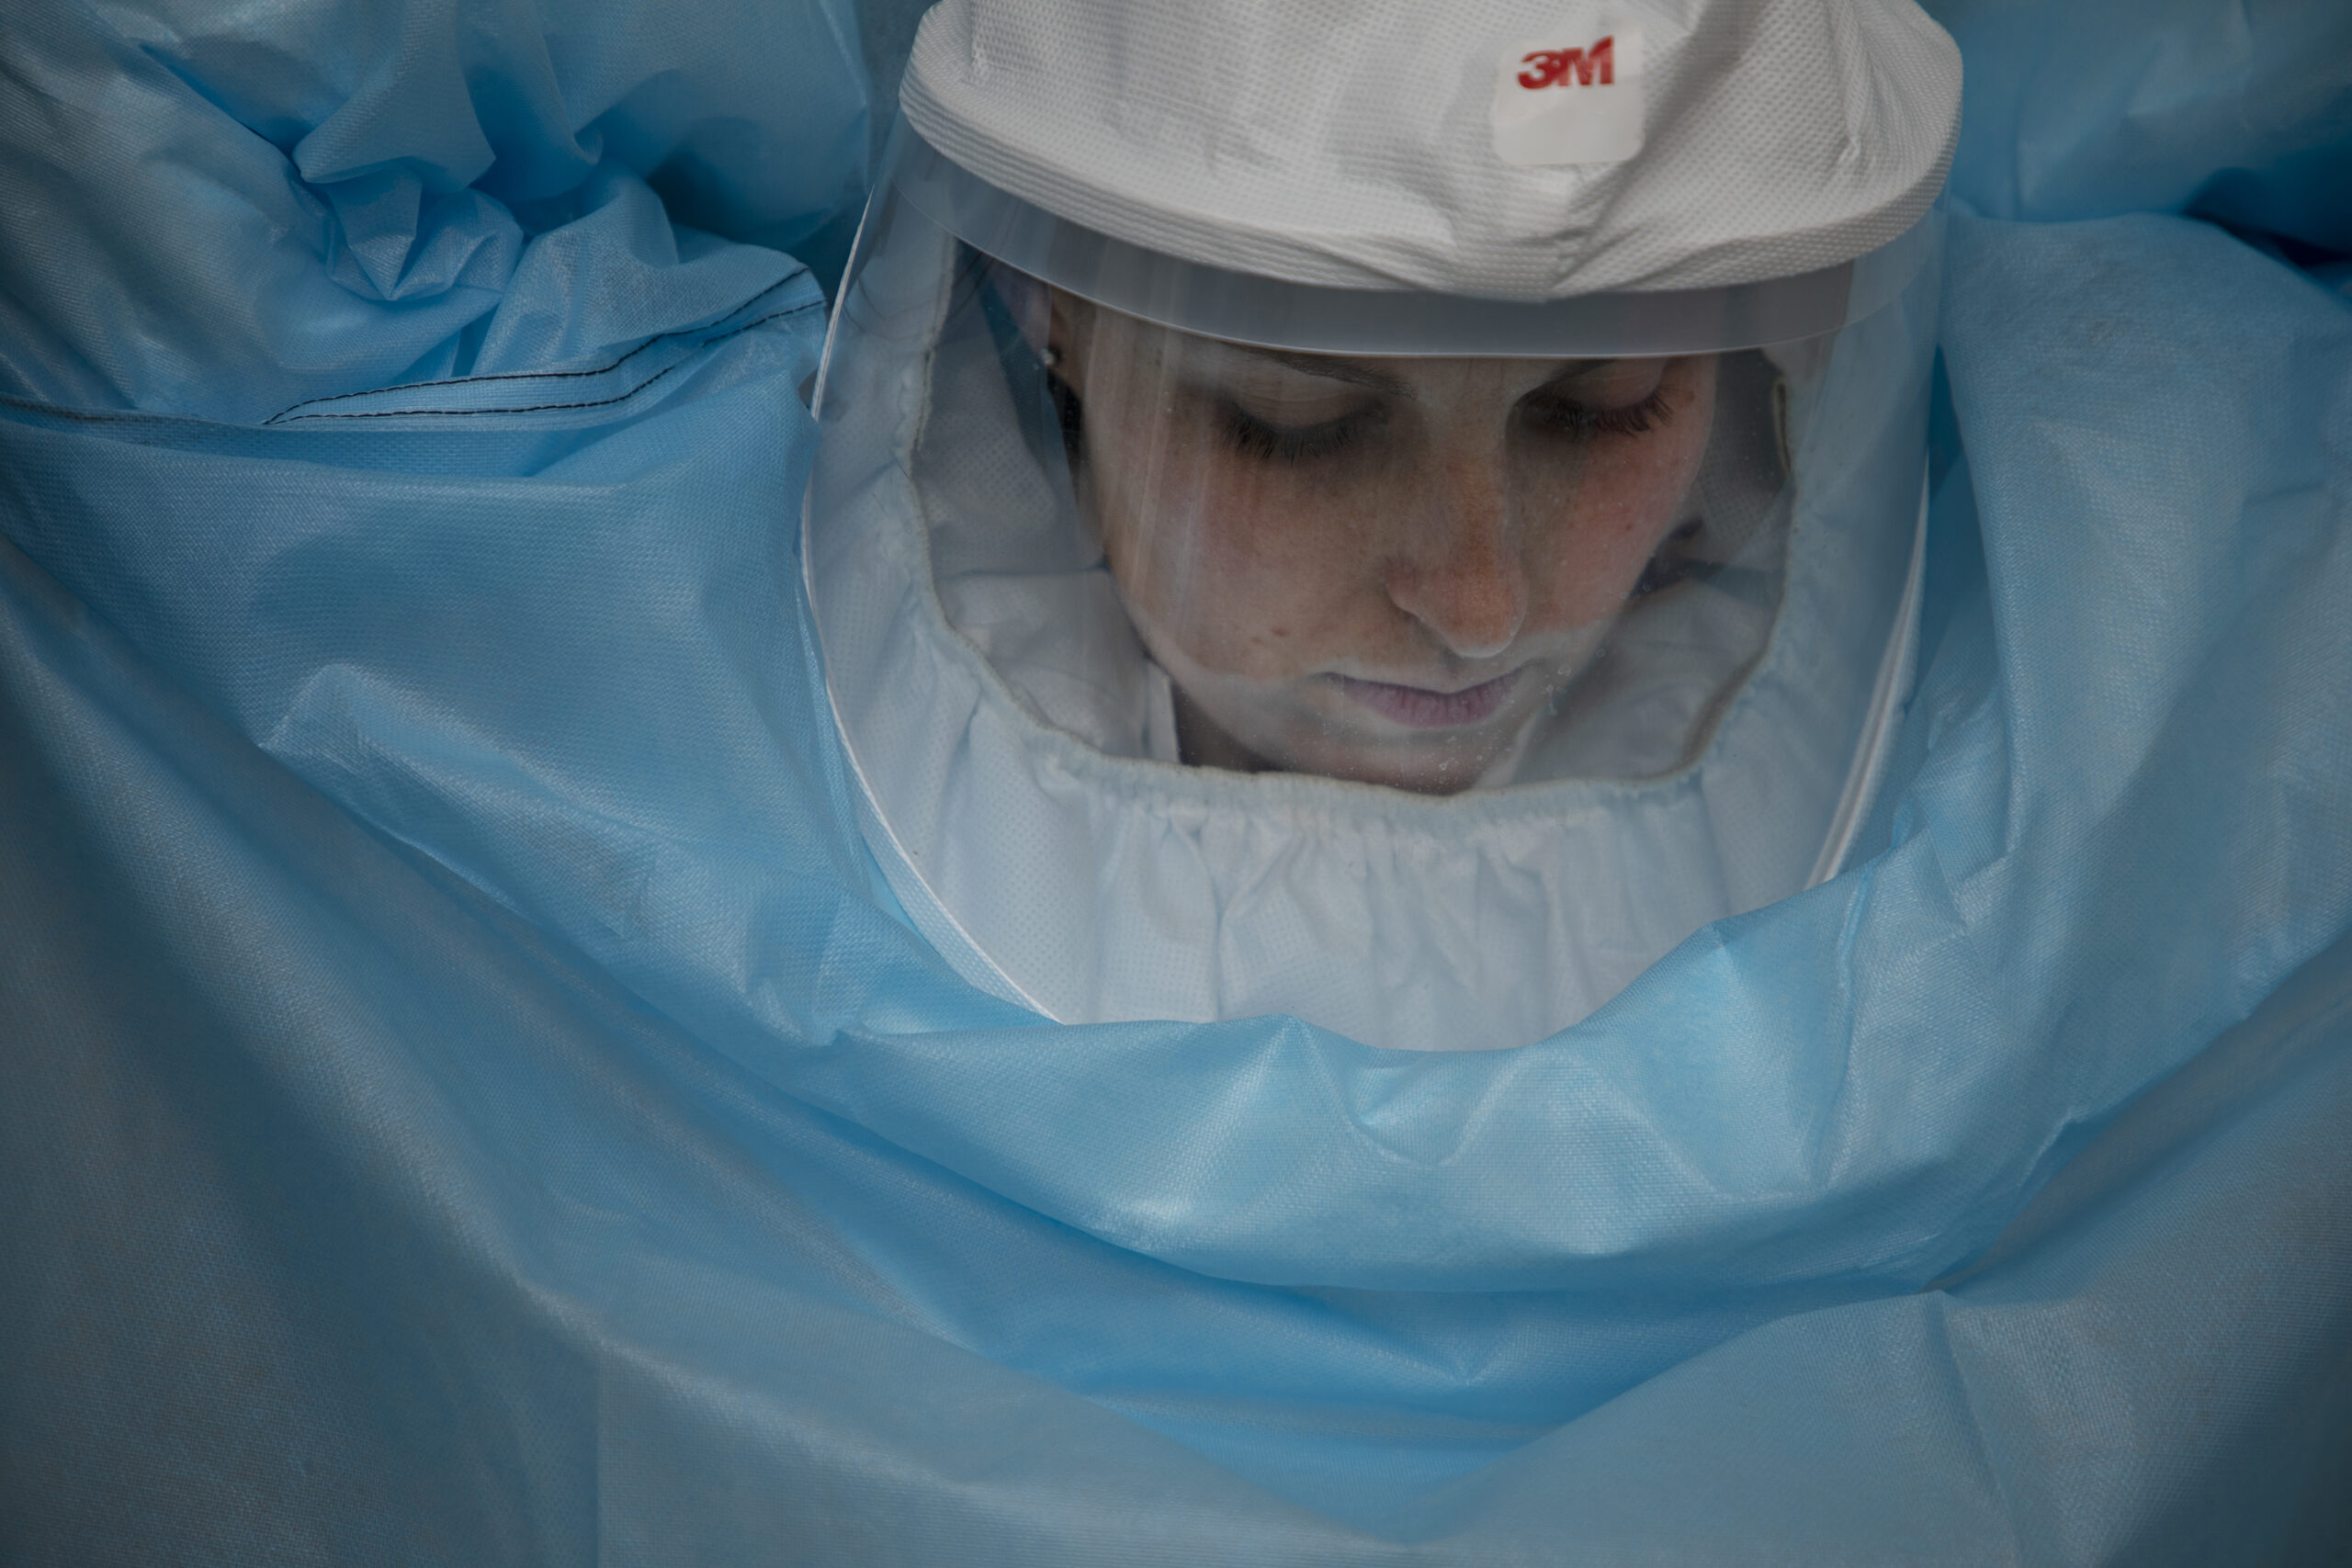 a young woman puts on a BSL3 suit